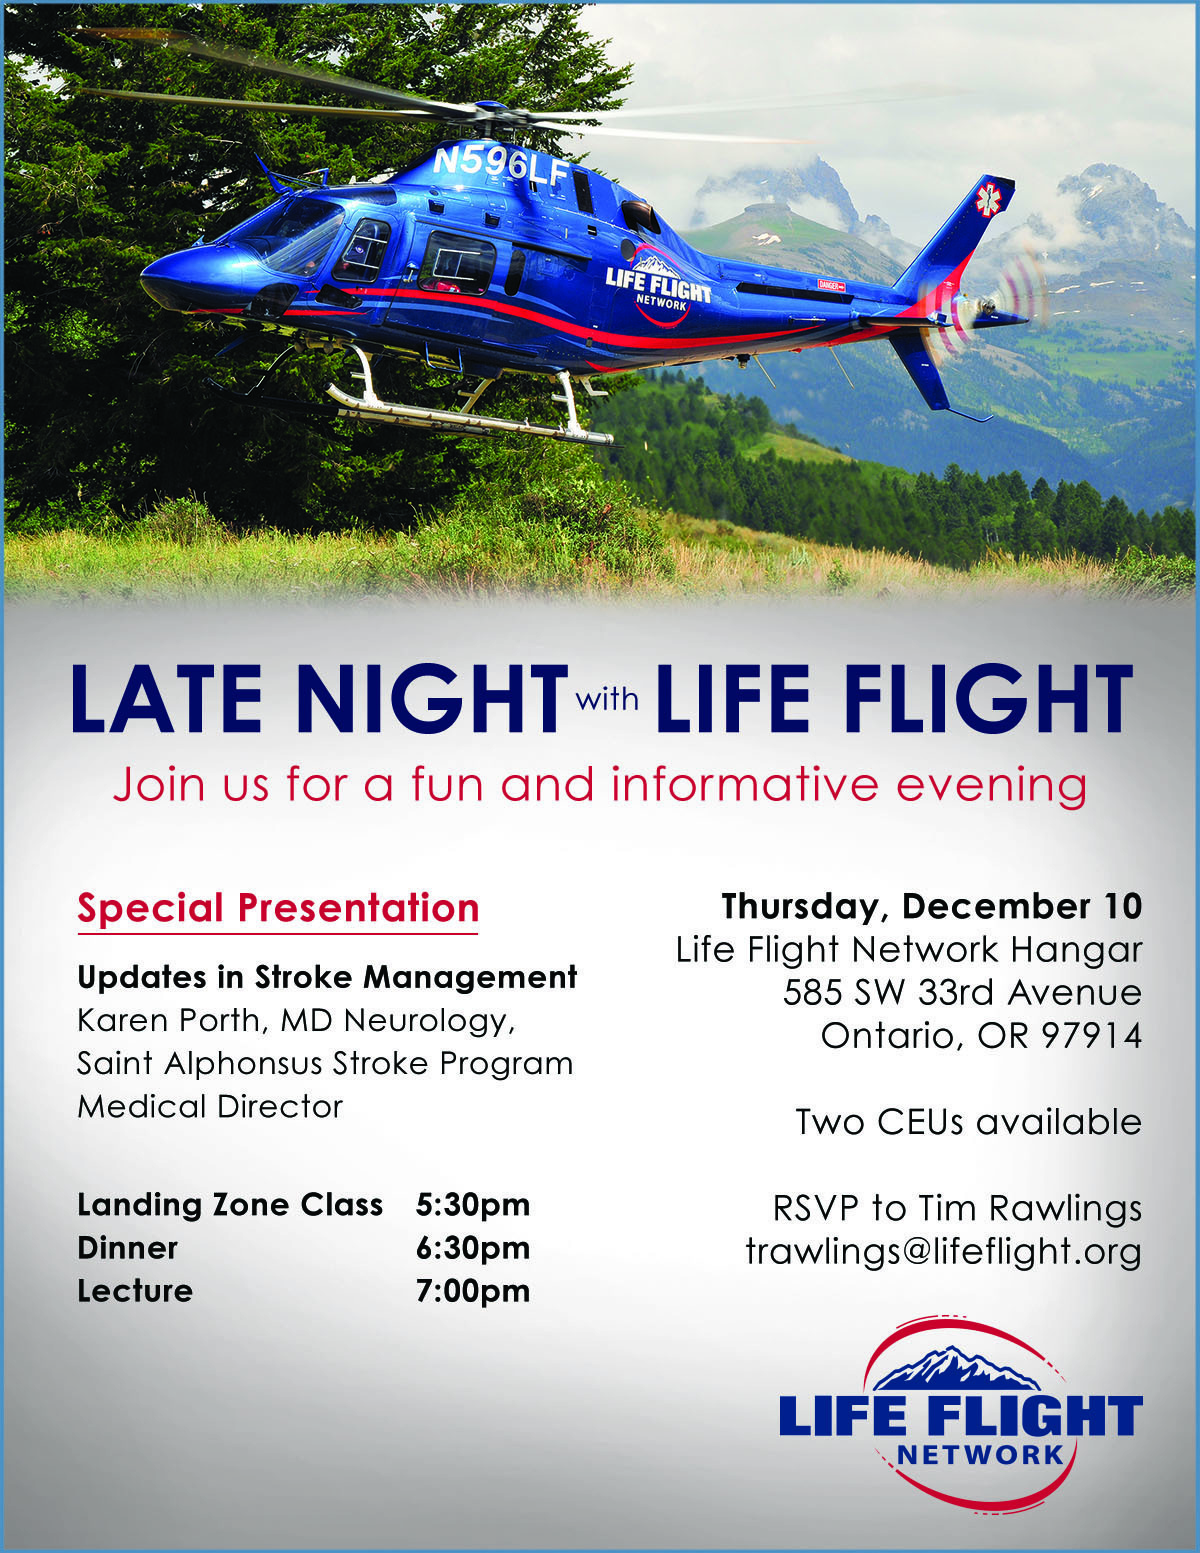 Late Night With Life Flight Network: Ontario, OR 12/10/15